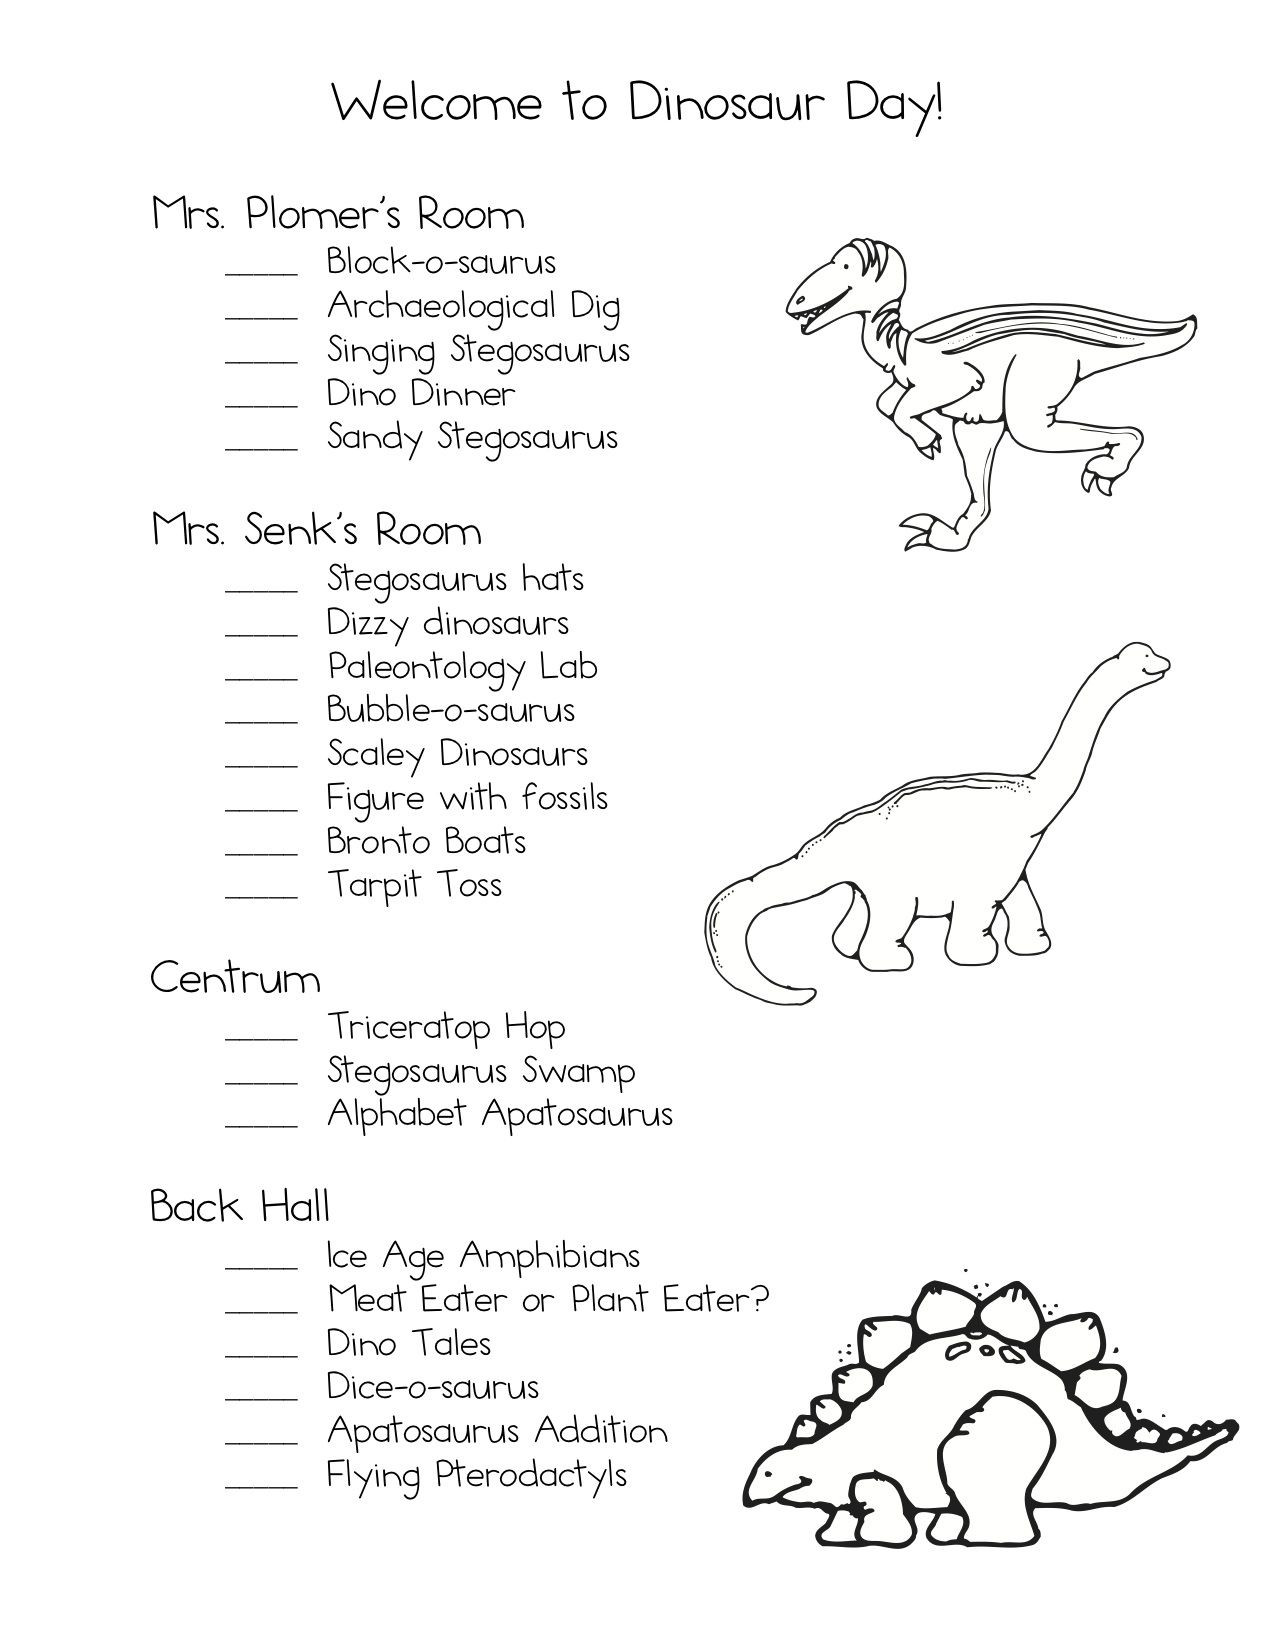 Dinosaur Worksheets for Preschoolers Delightful Dinosaur Day